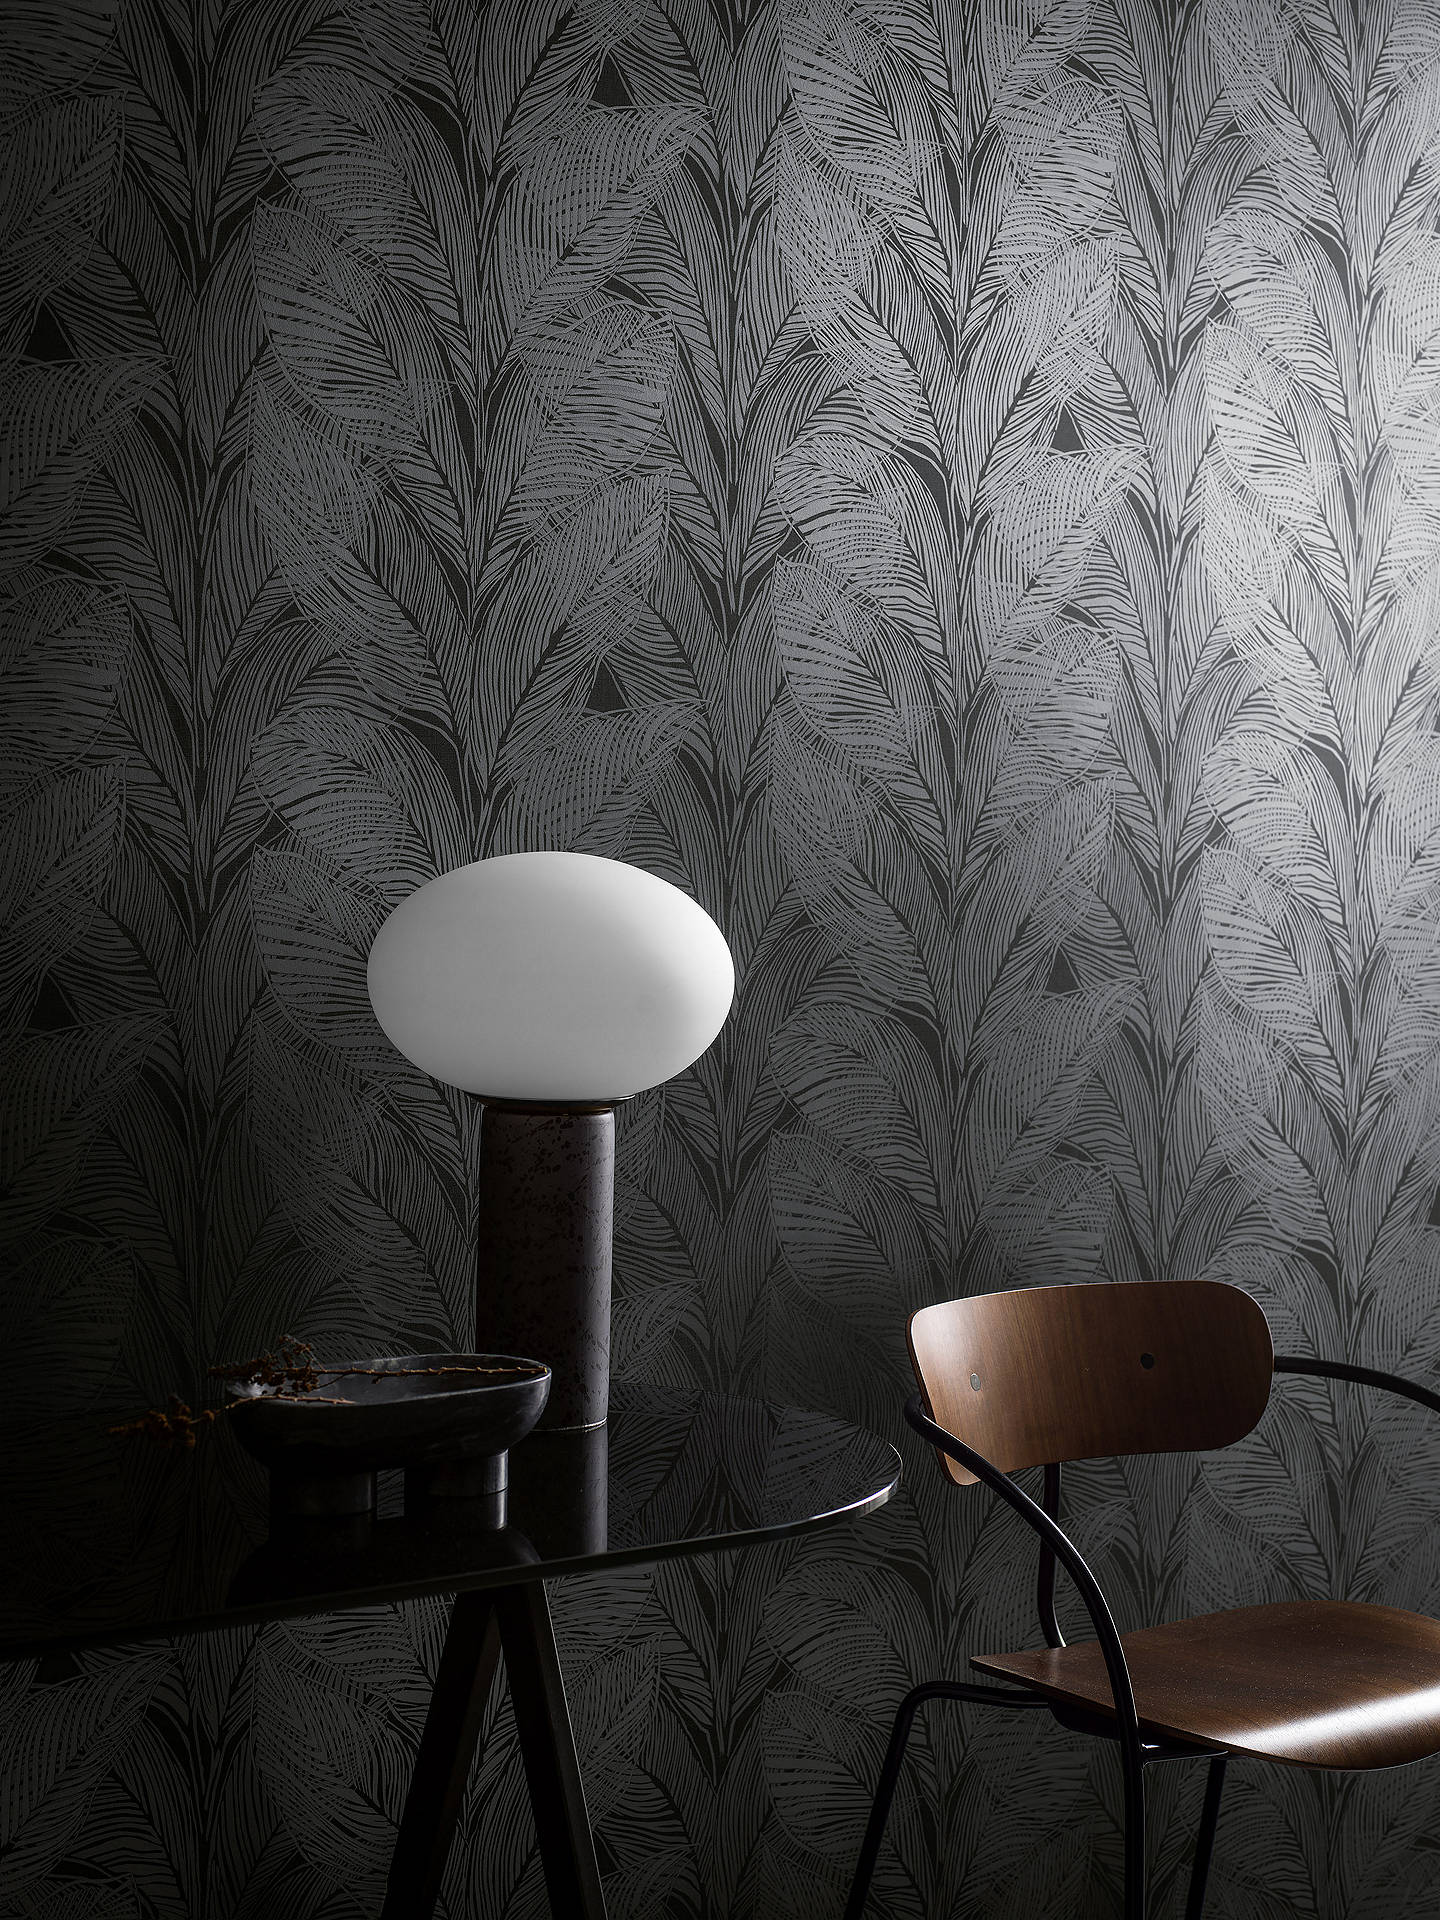 Buy Engblad & Co Urban Jungle Wallpaper, 4576 Online at johnlewis.com